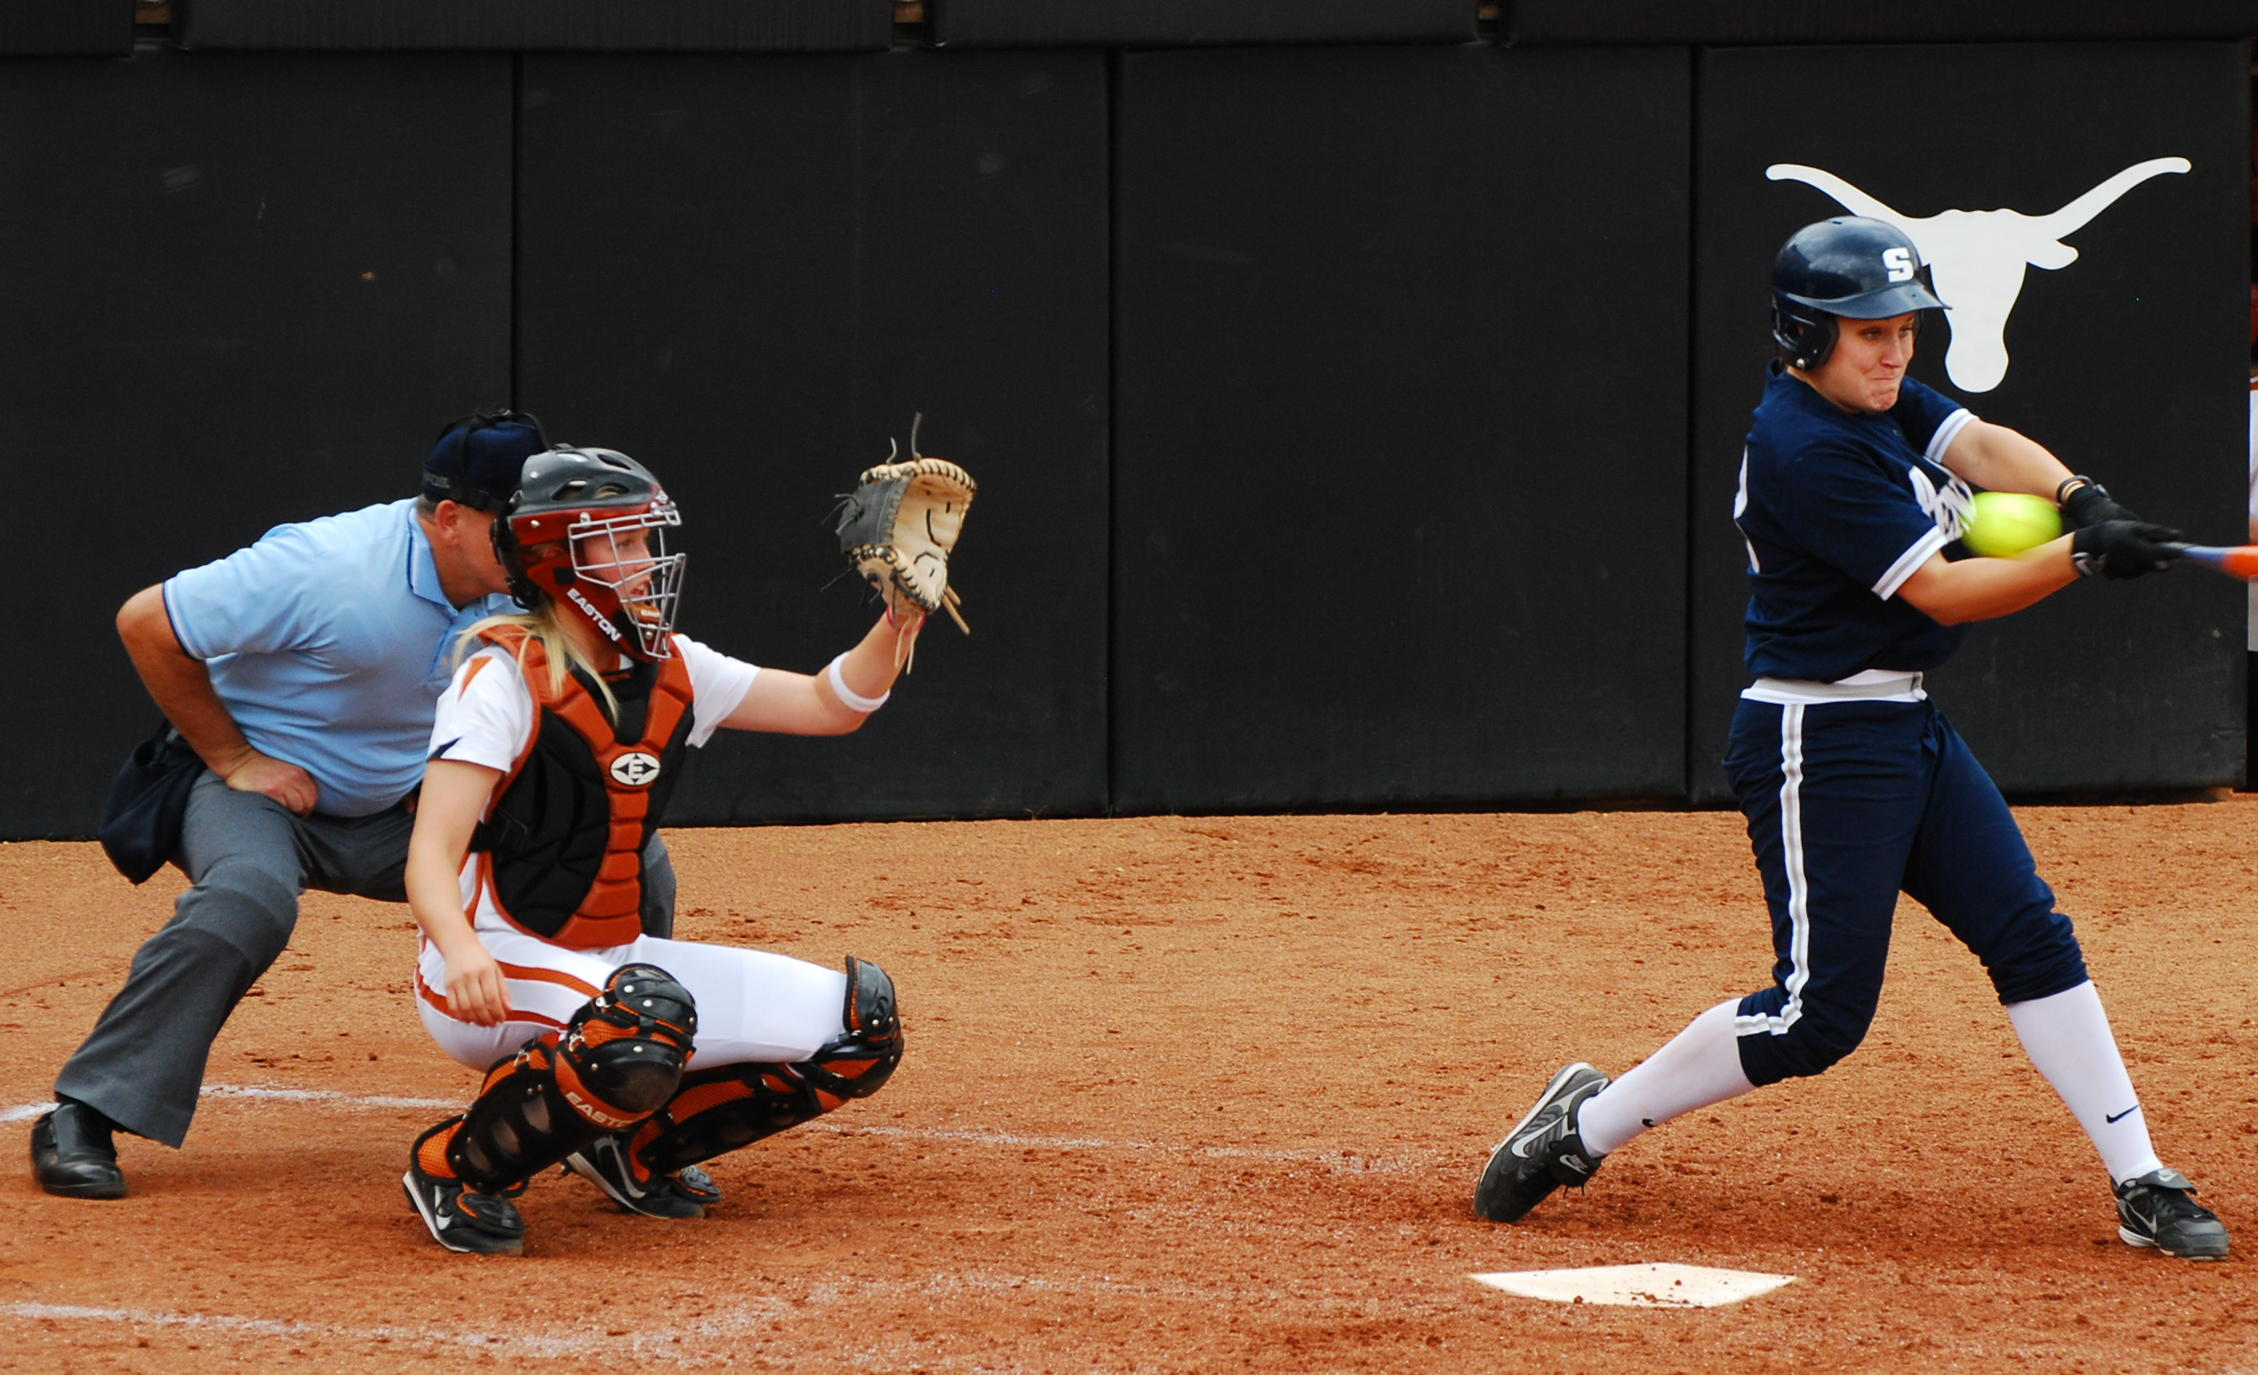 The Basic Rules And Guidelines To Play Softball